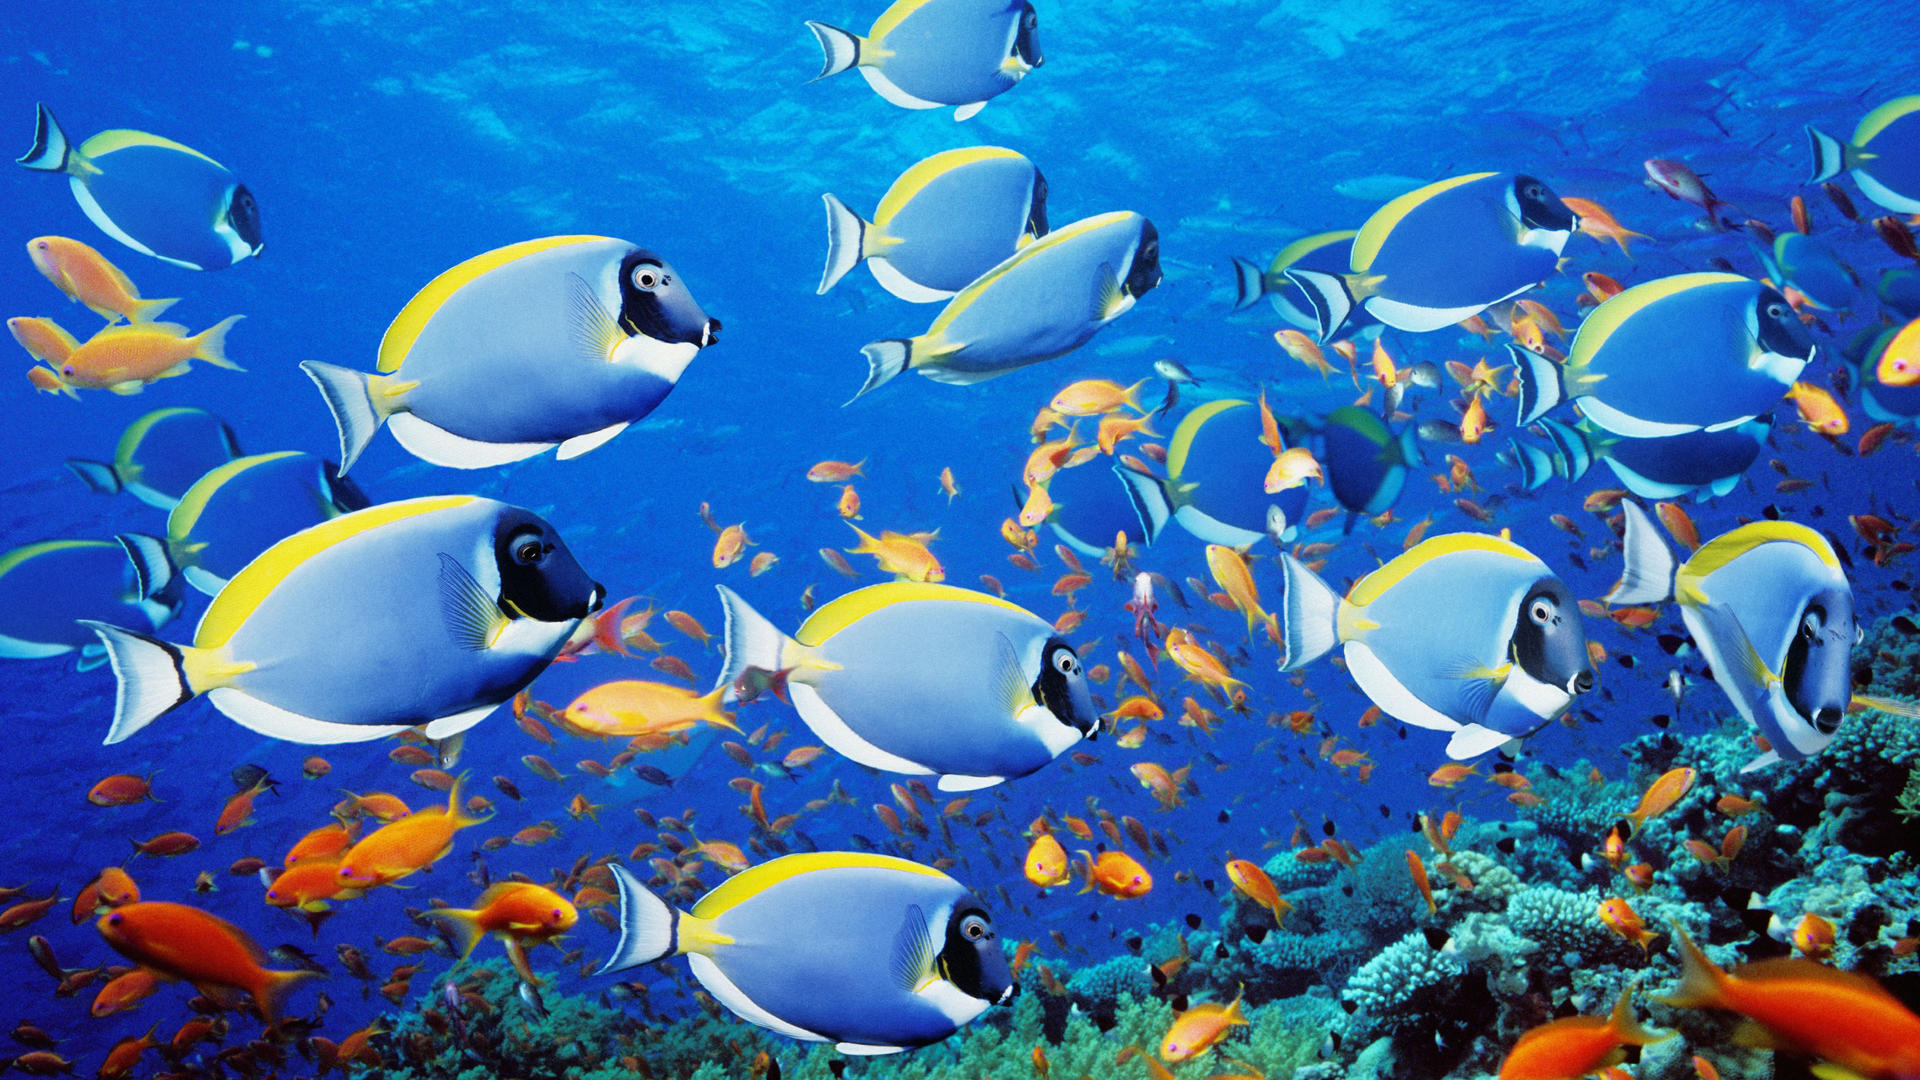 School of fish wallpaper wallpapersafari for Photos of fish